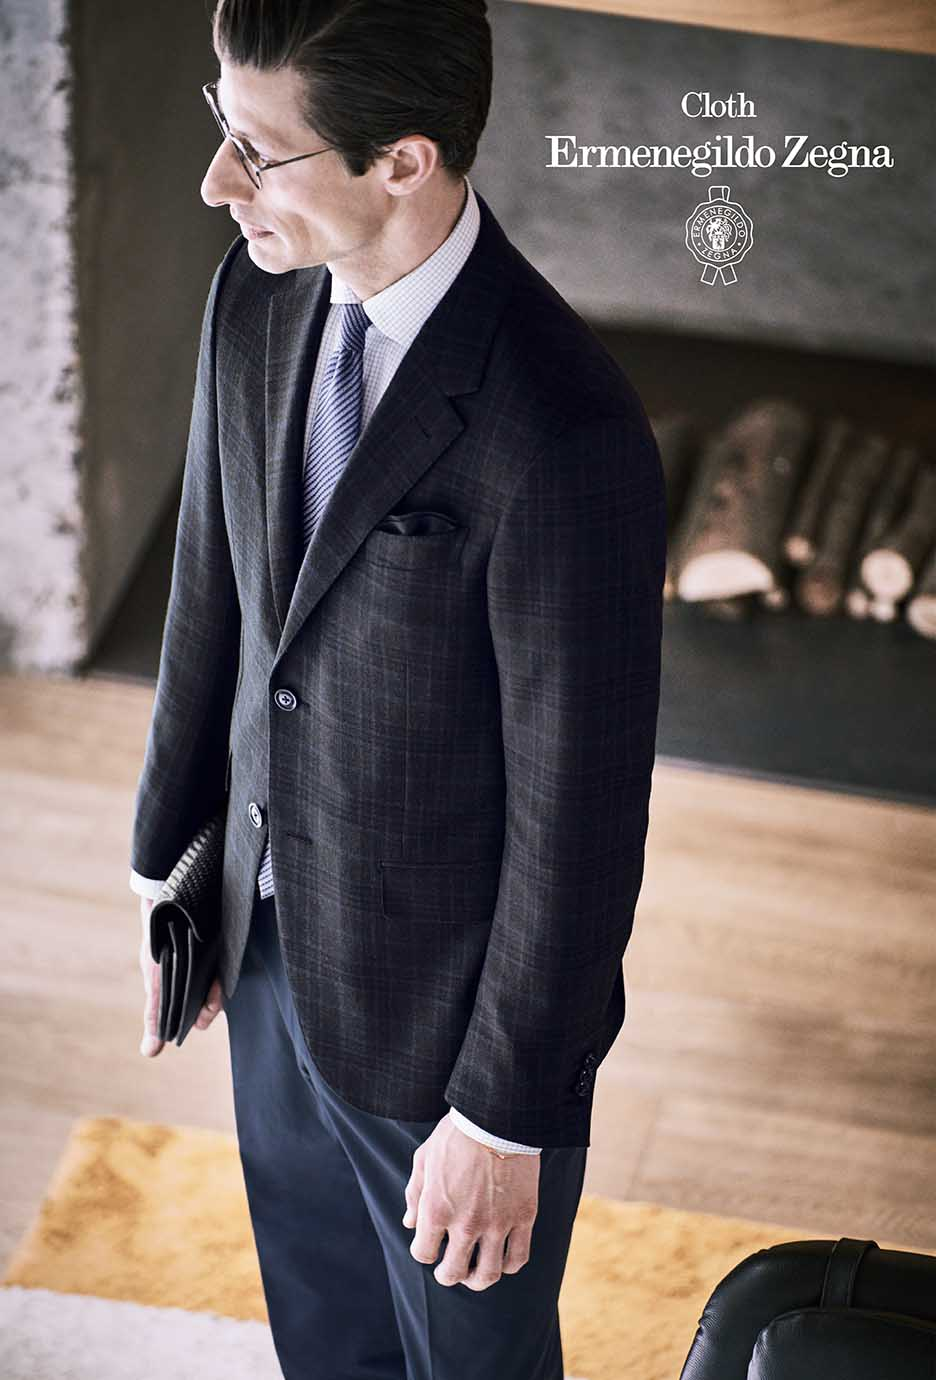 2eadcdd1513 Bespoke Suit Guide  How to Buy the Perfect Suit